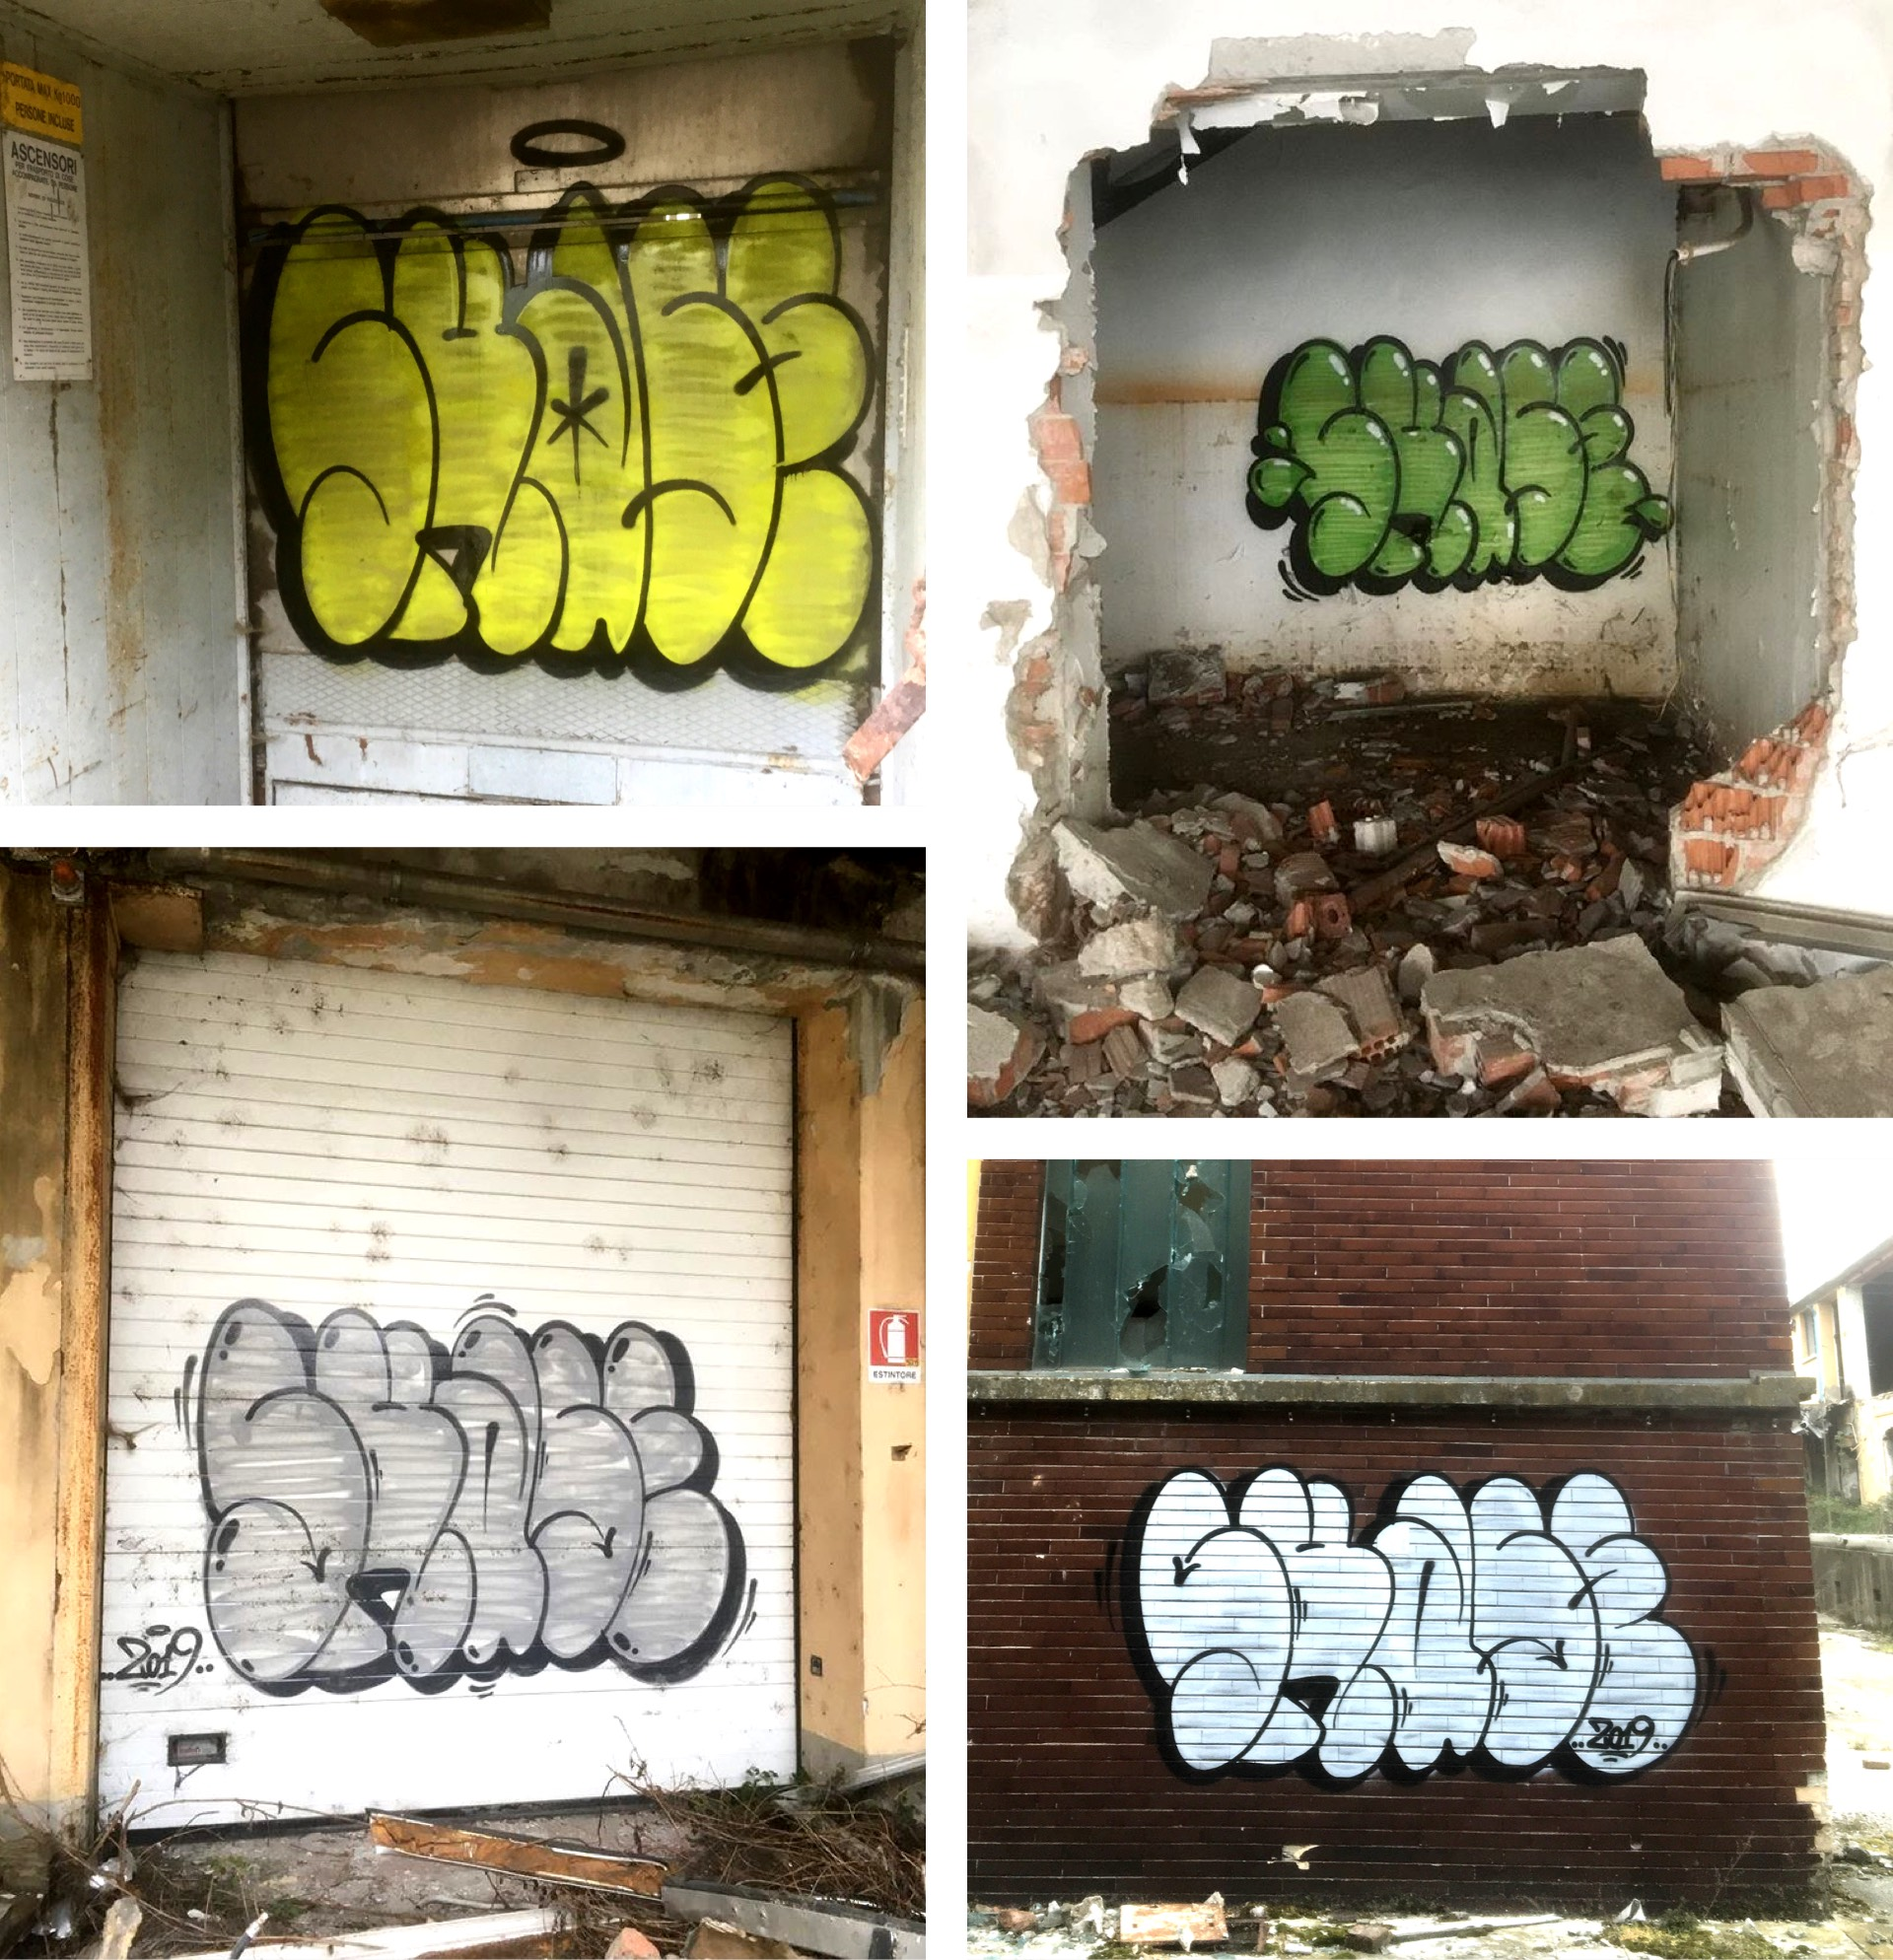 Throwups by Skase